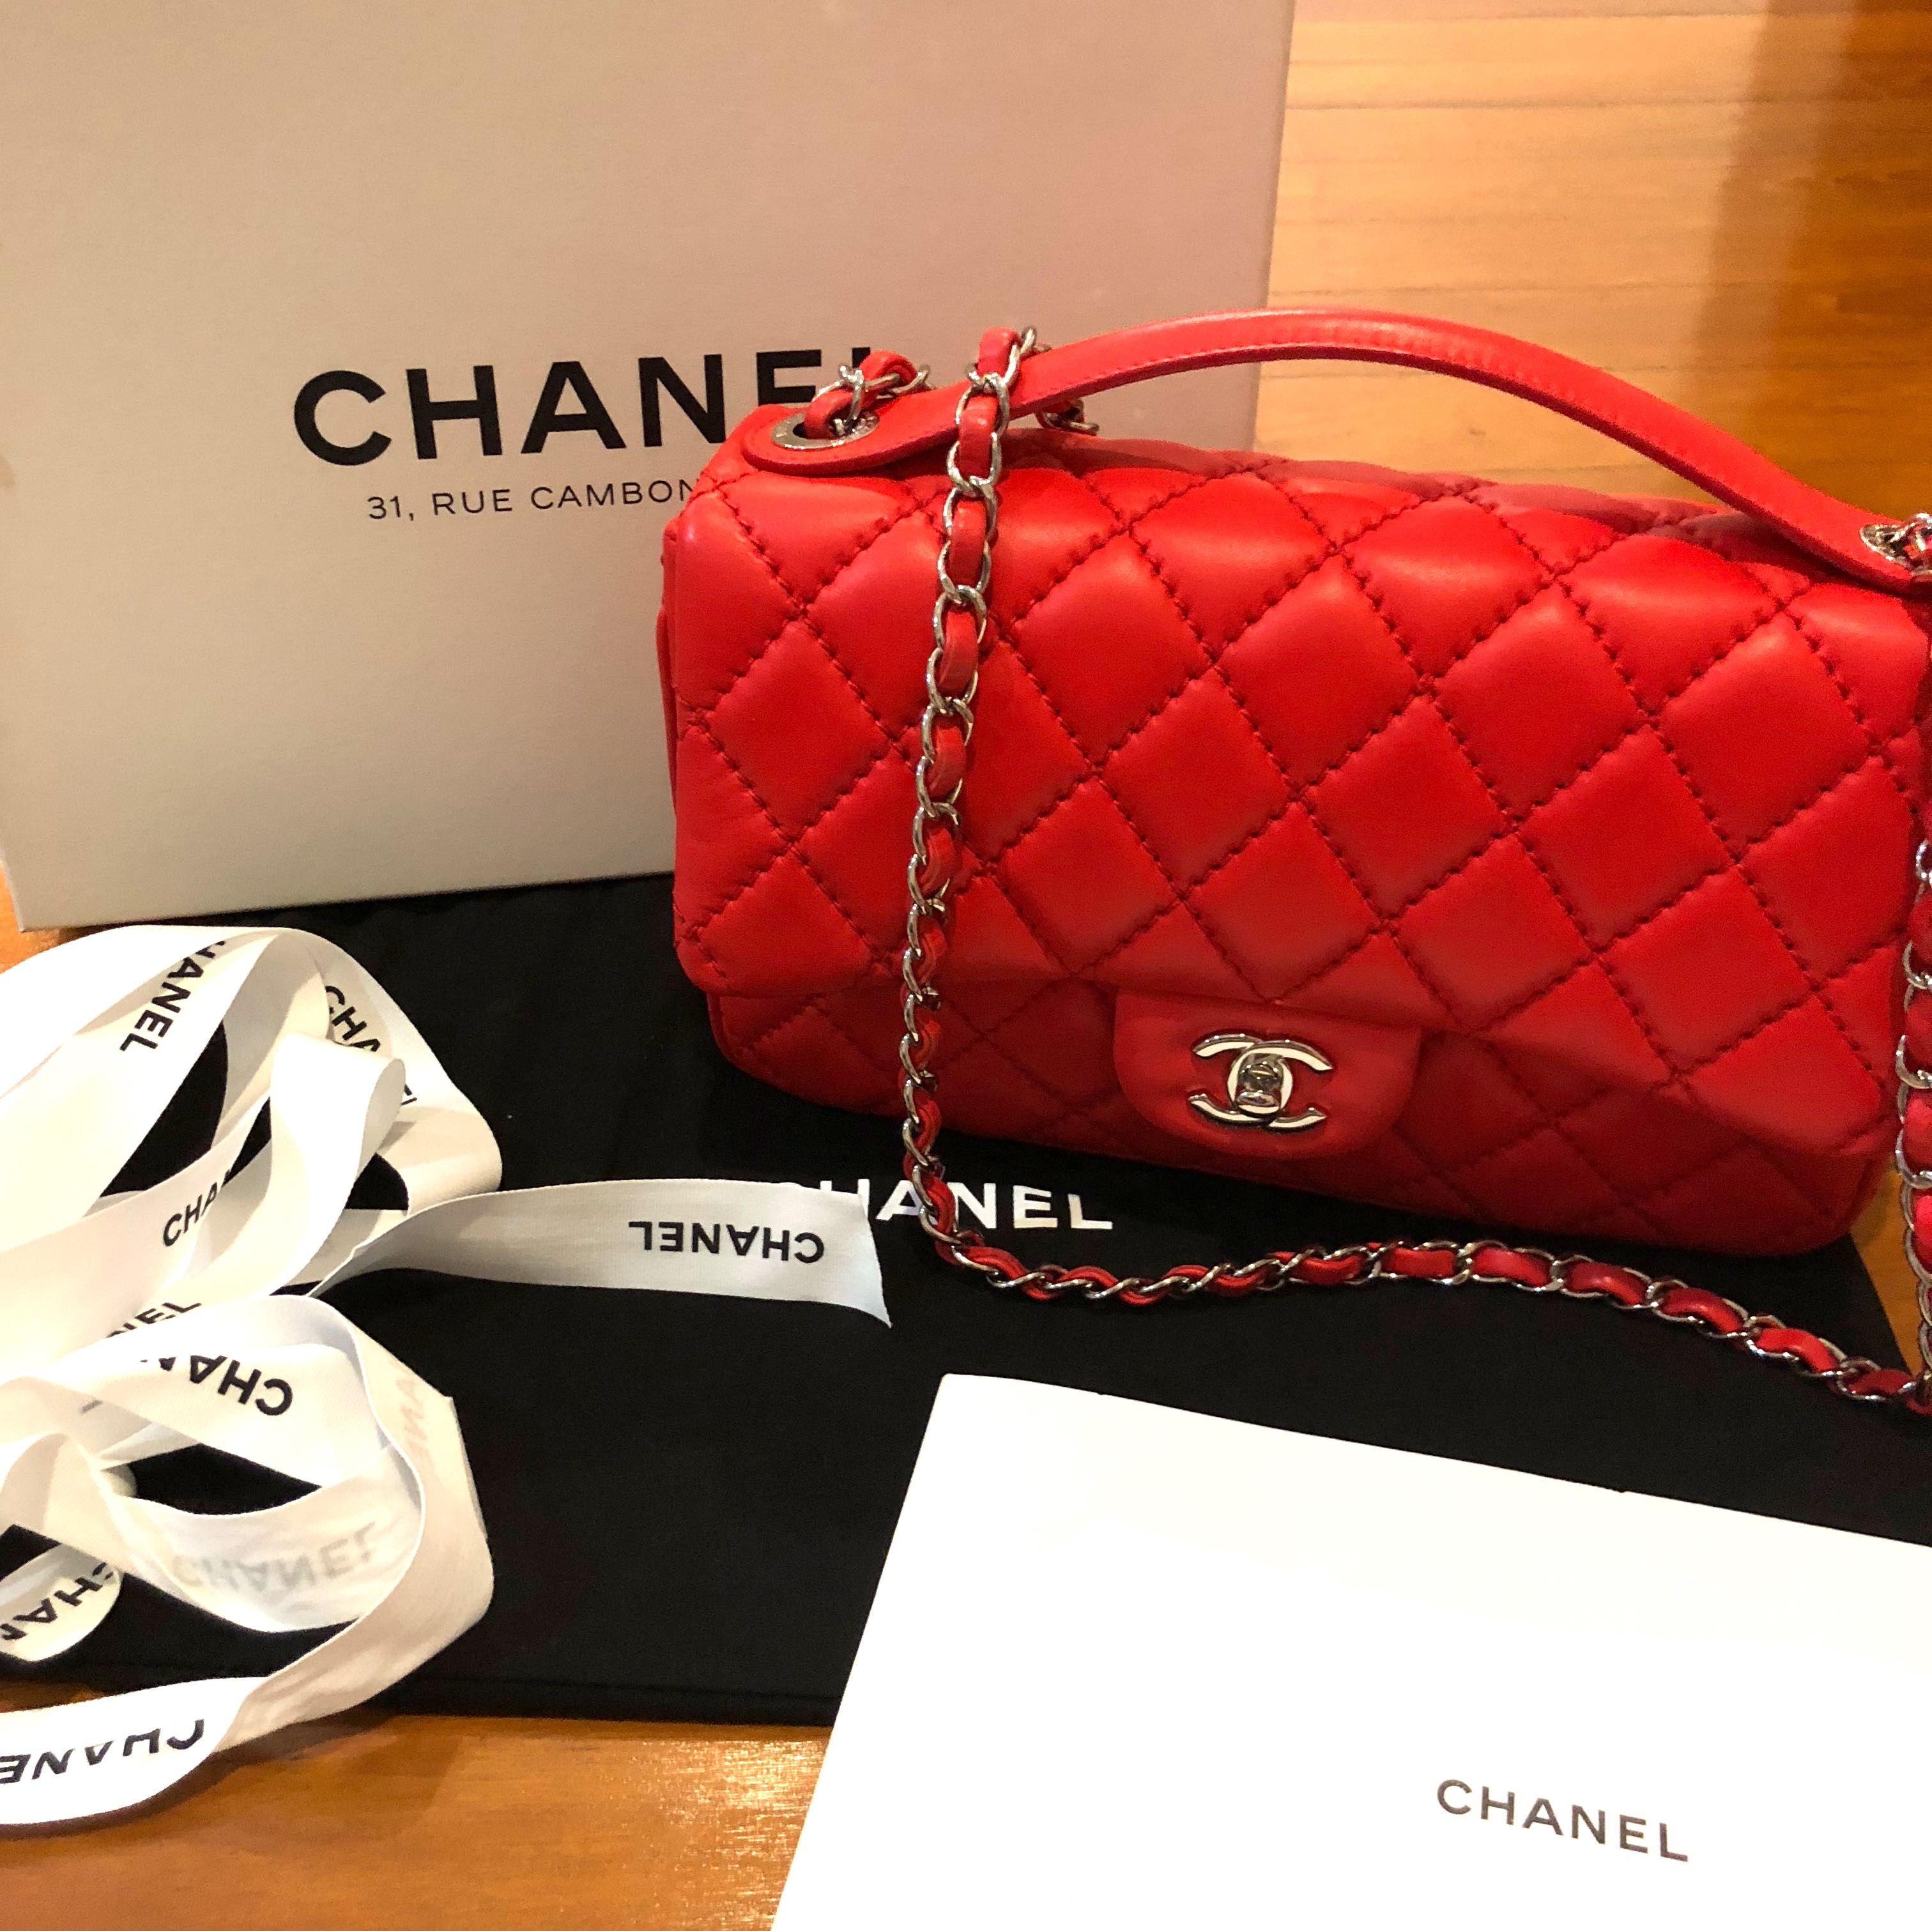 🔥FIRE SALE🔥Chanel single flap bag with TOP handle, Luxury, Bags    Wallets, Handbags on Carousell 136c8c66d7